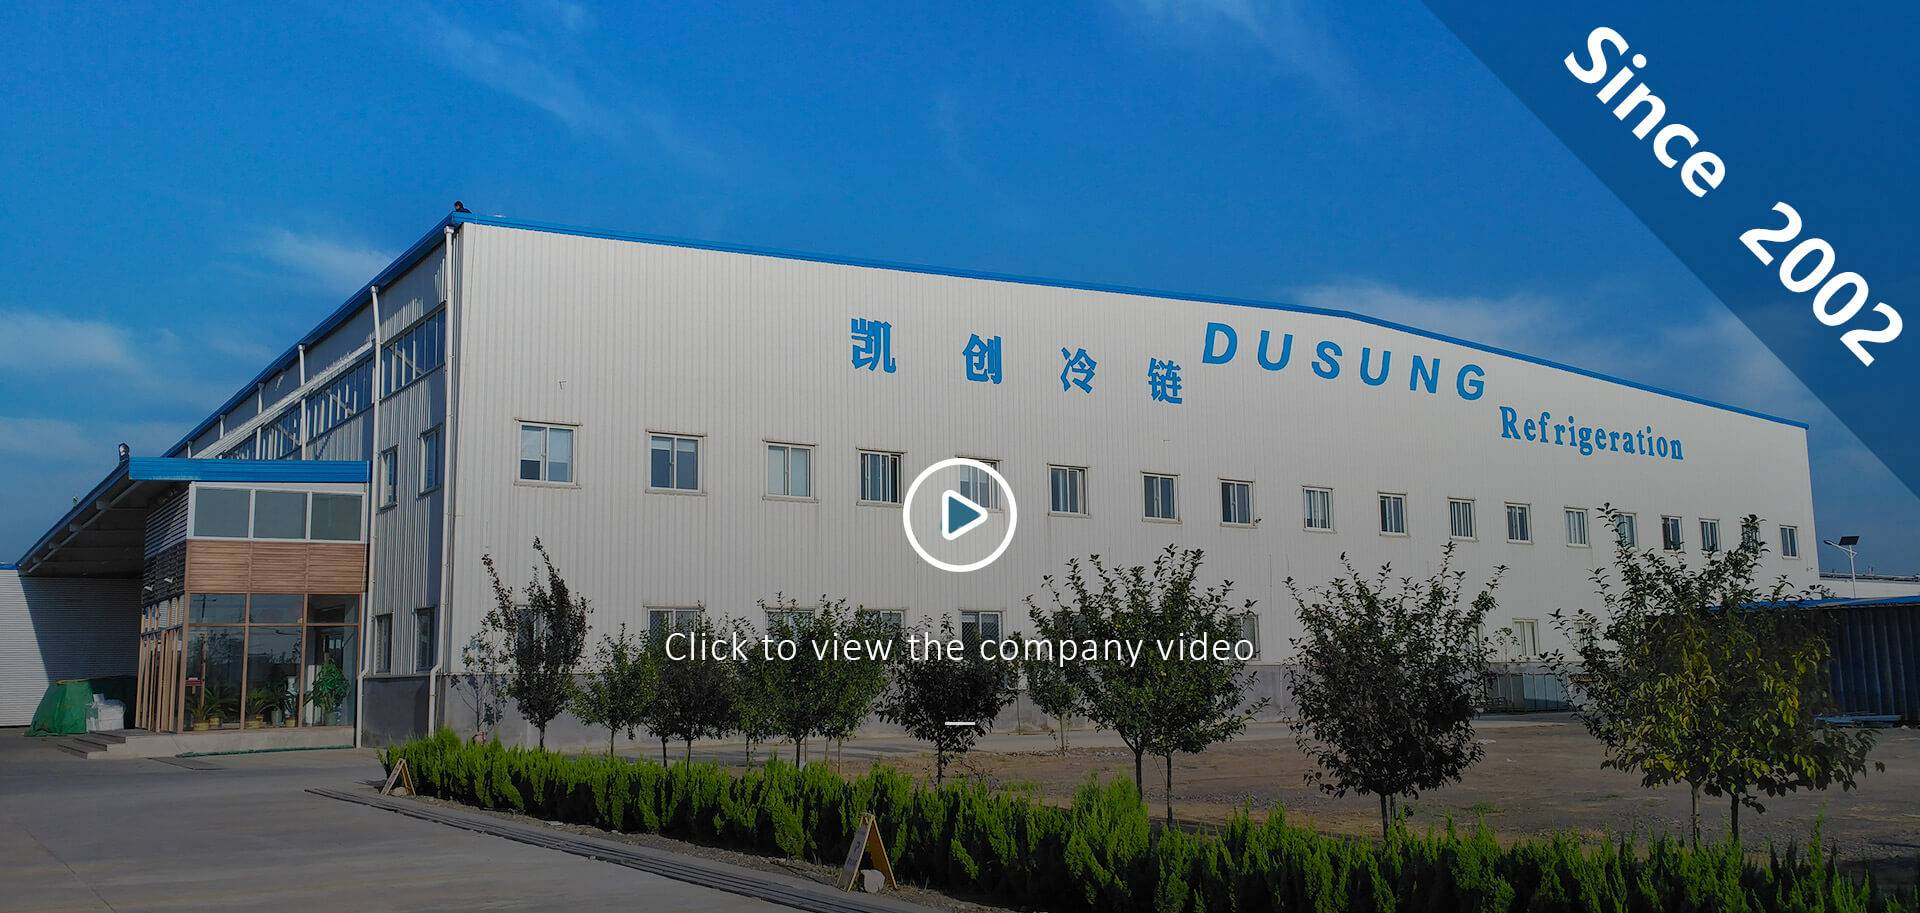 dusung commercial refrigeration manufacturer